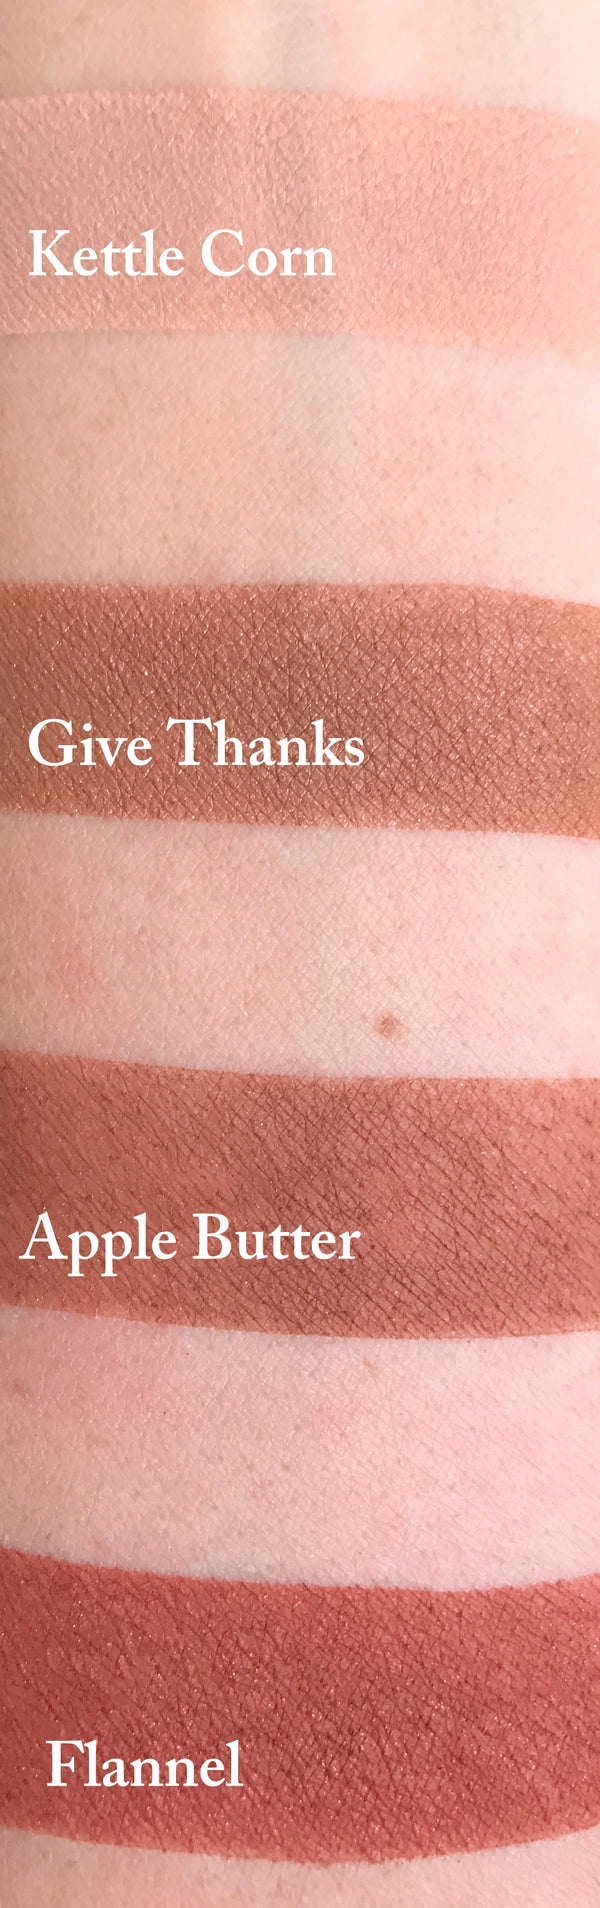 GIVE THANKS- All Natural, Vegan Friendly Eyeshadow and Eyeliner Makeup